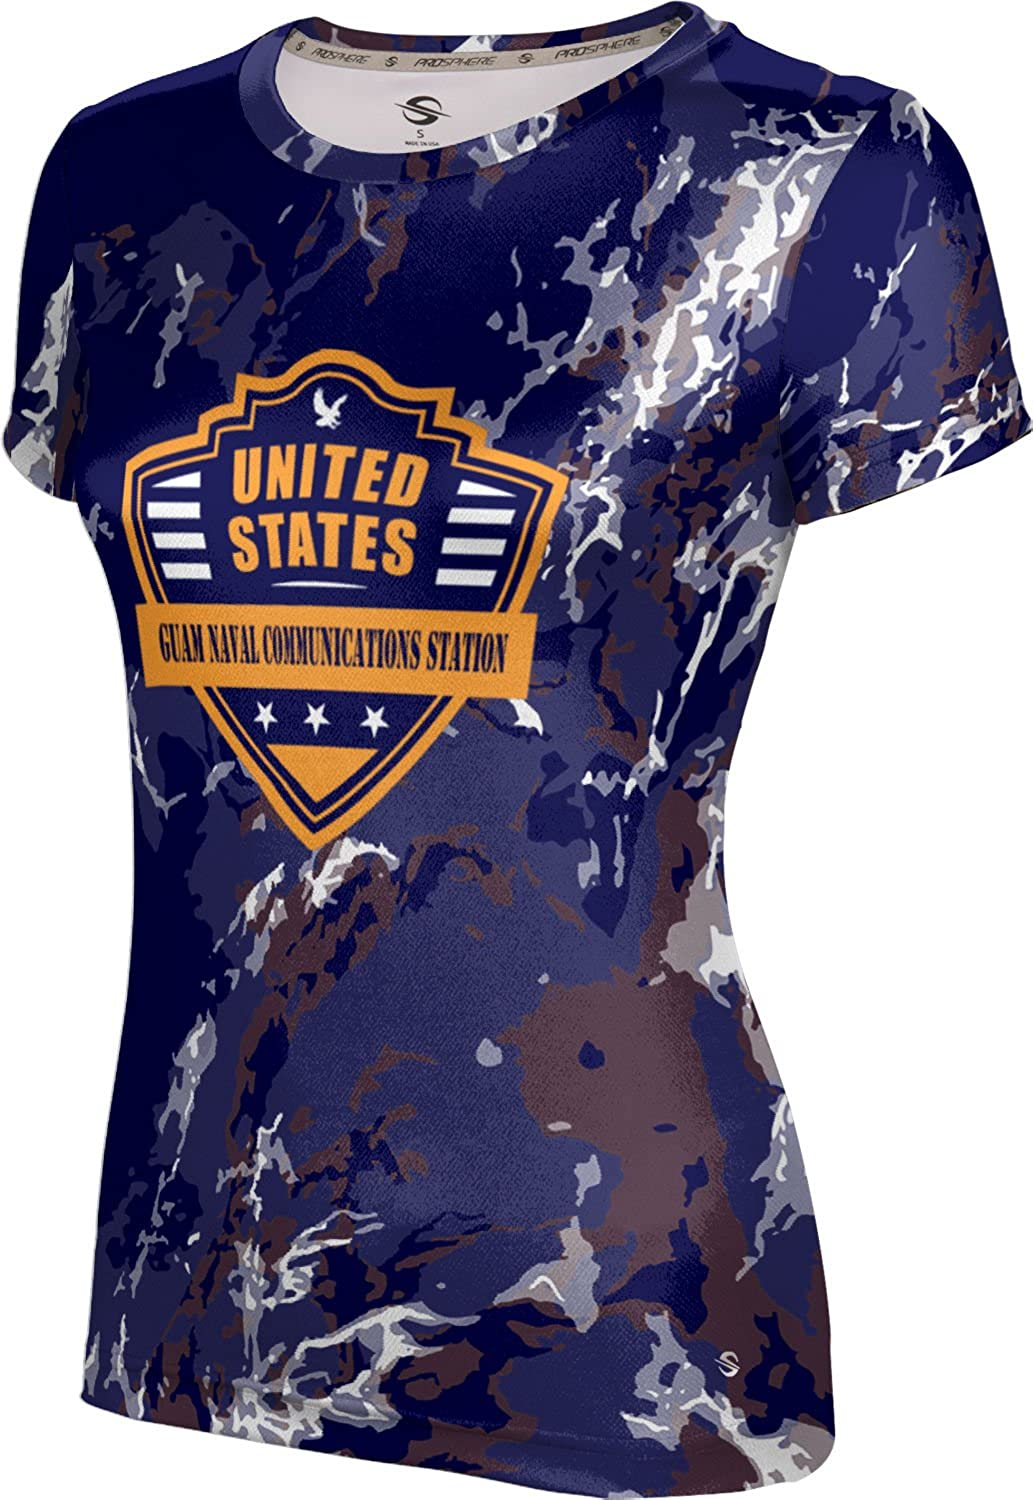 ProSphere Women's Guam Naval Communications Station Military Marble Tech Tee